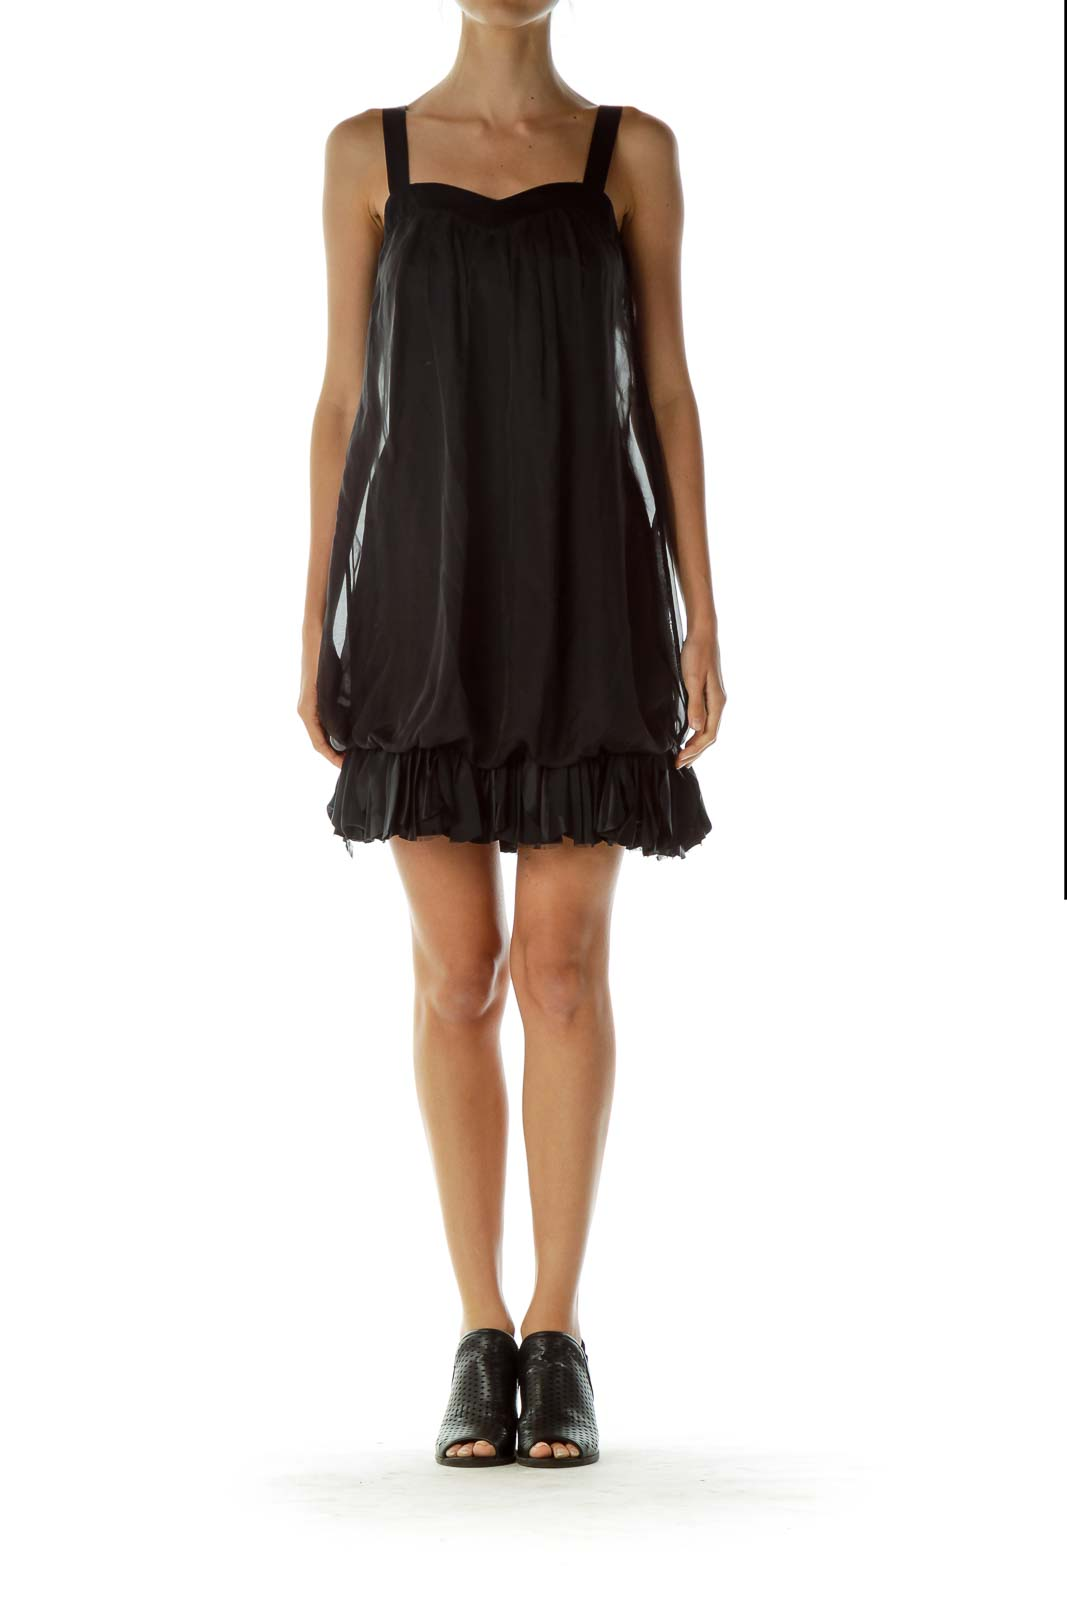 Black Ruffled Sweetheart Neckline Cocktail Dress